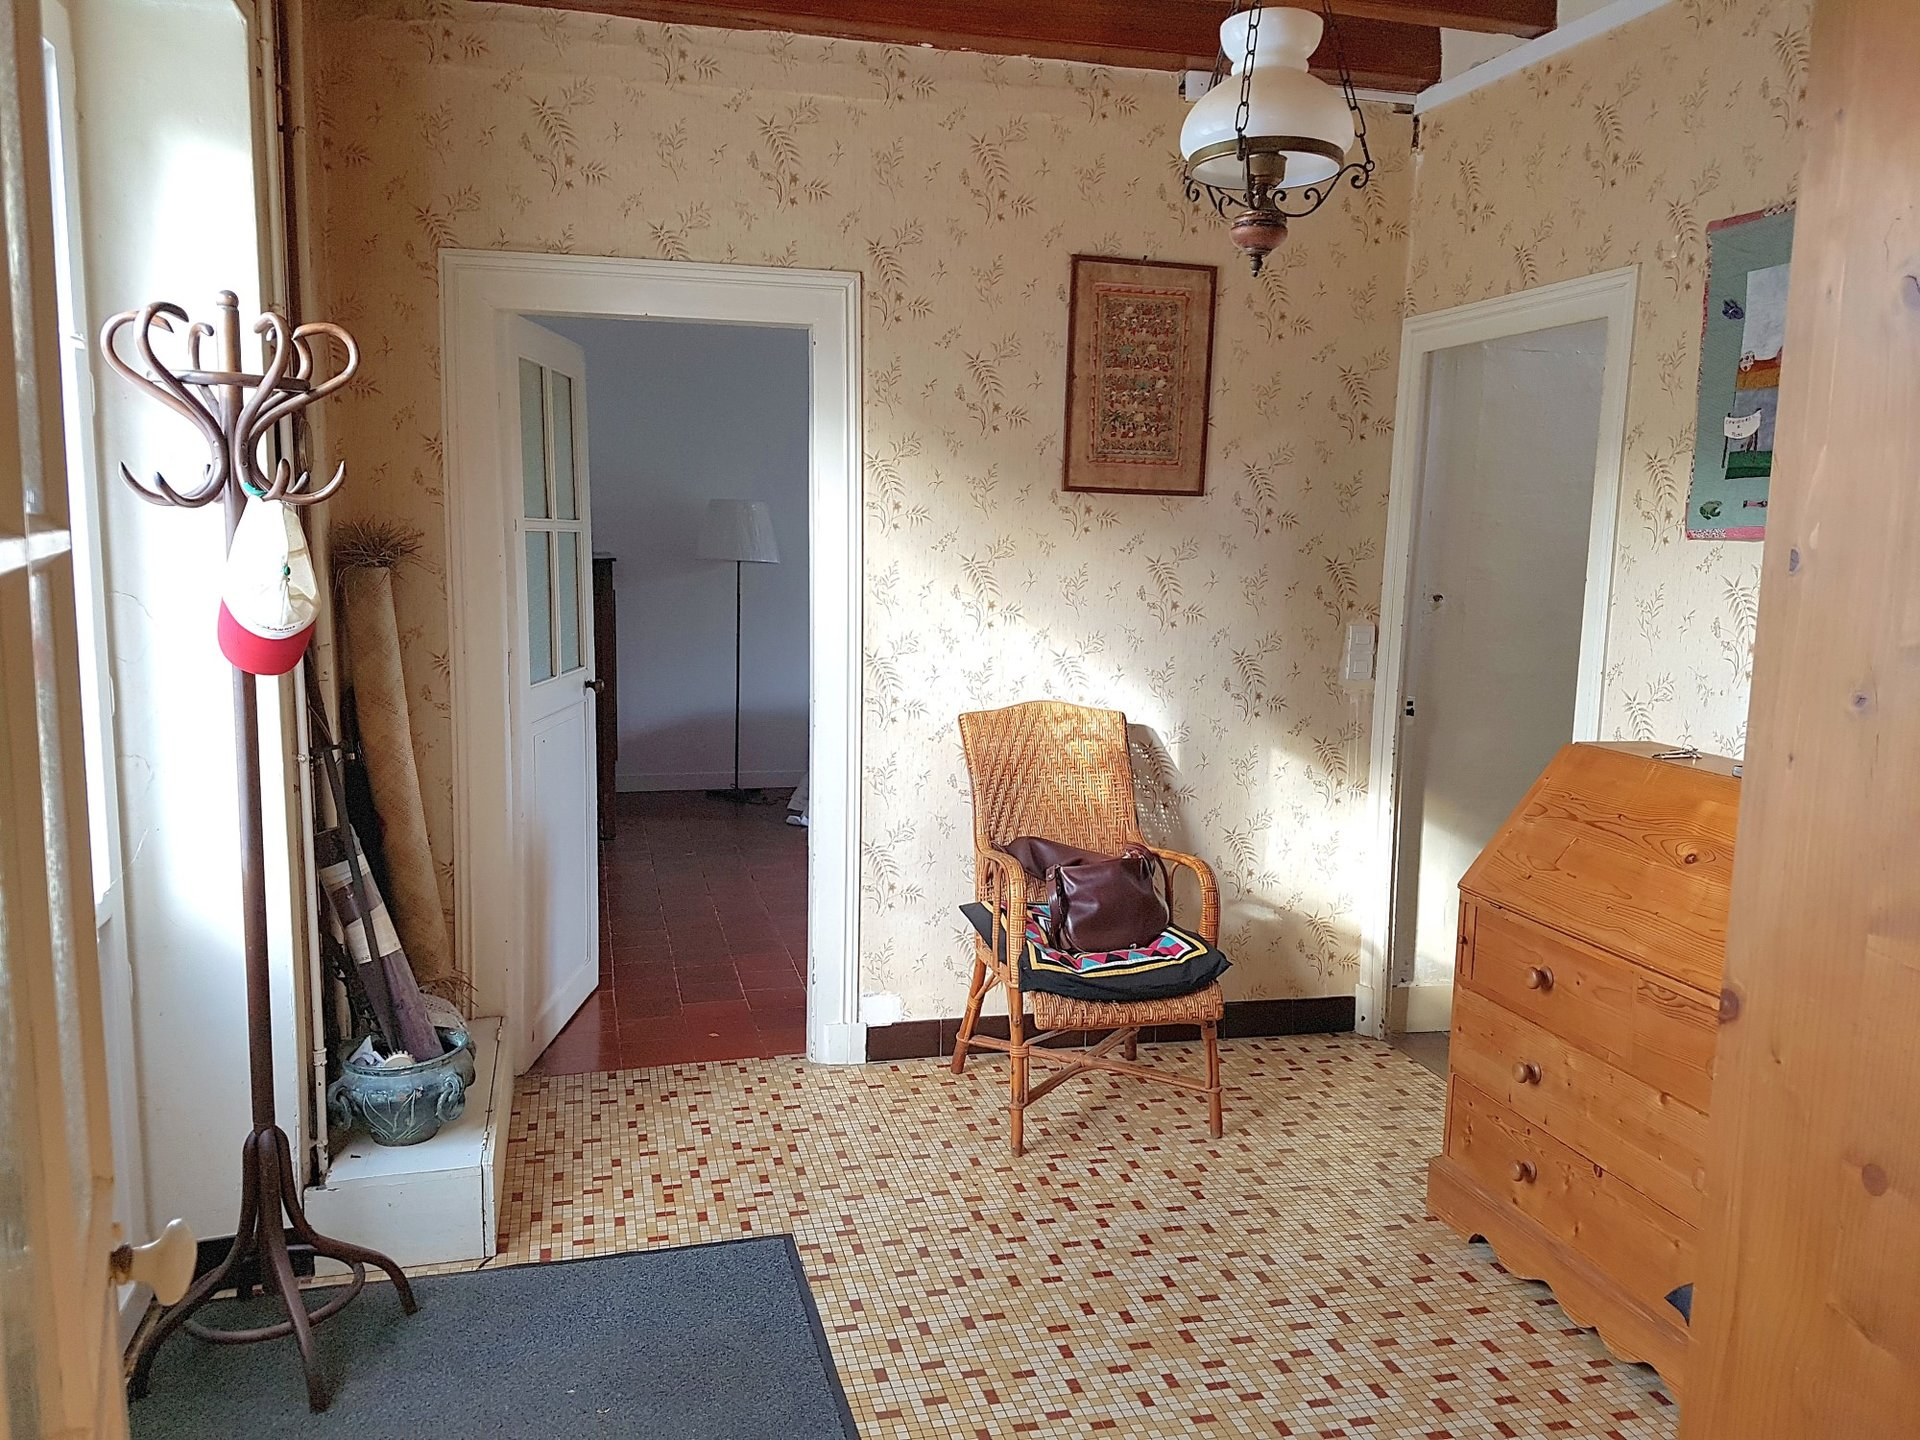 La Brenne, Indre 36: village house in very good condition